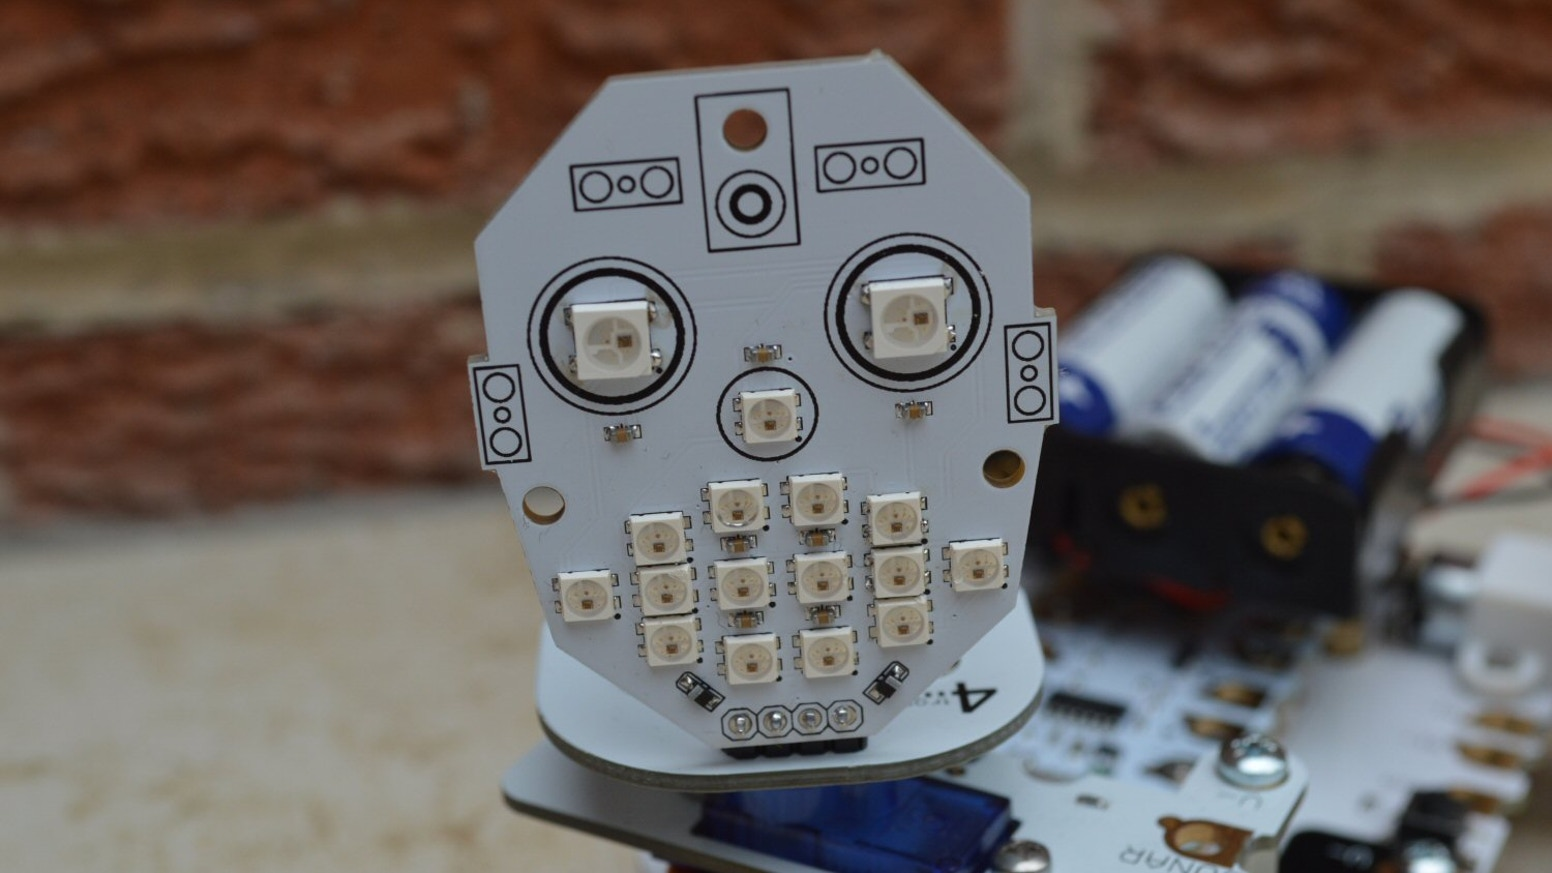 Add character and humour to your robot creations with Raspberry Pi, Arduino, Codebug, Micro:Bit and Crumble